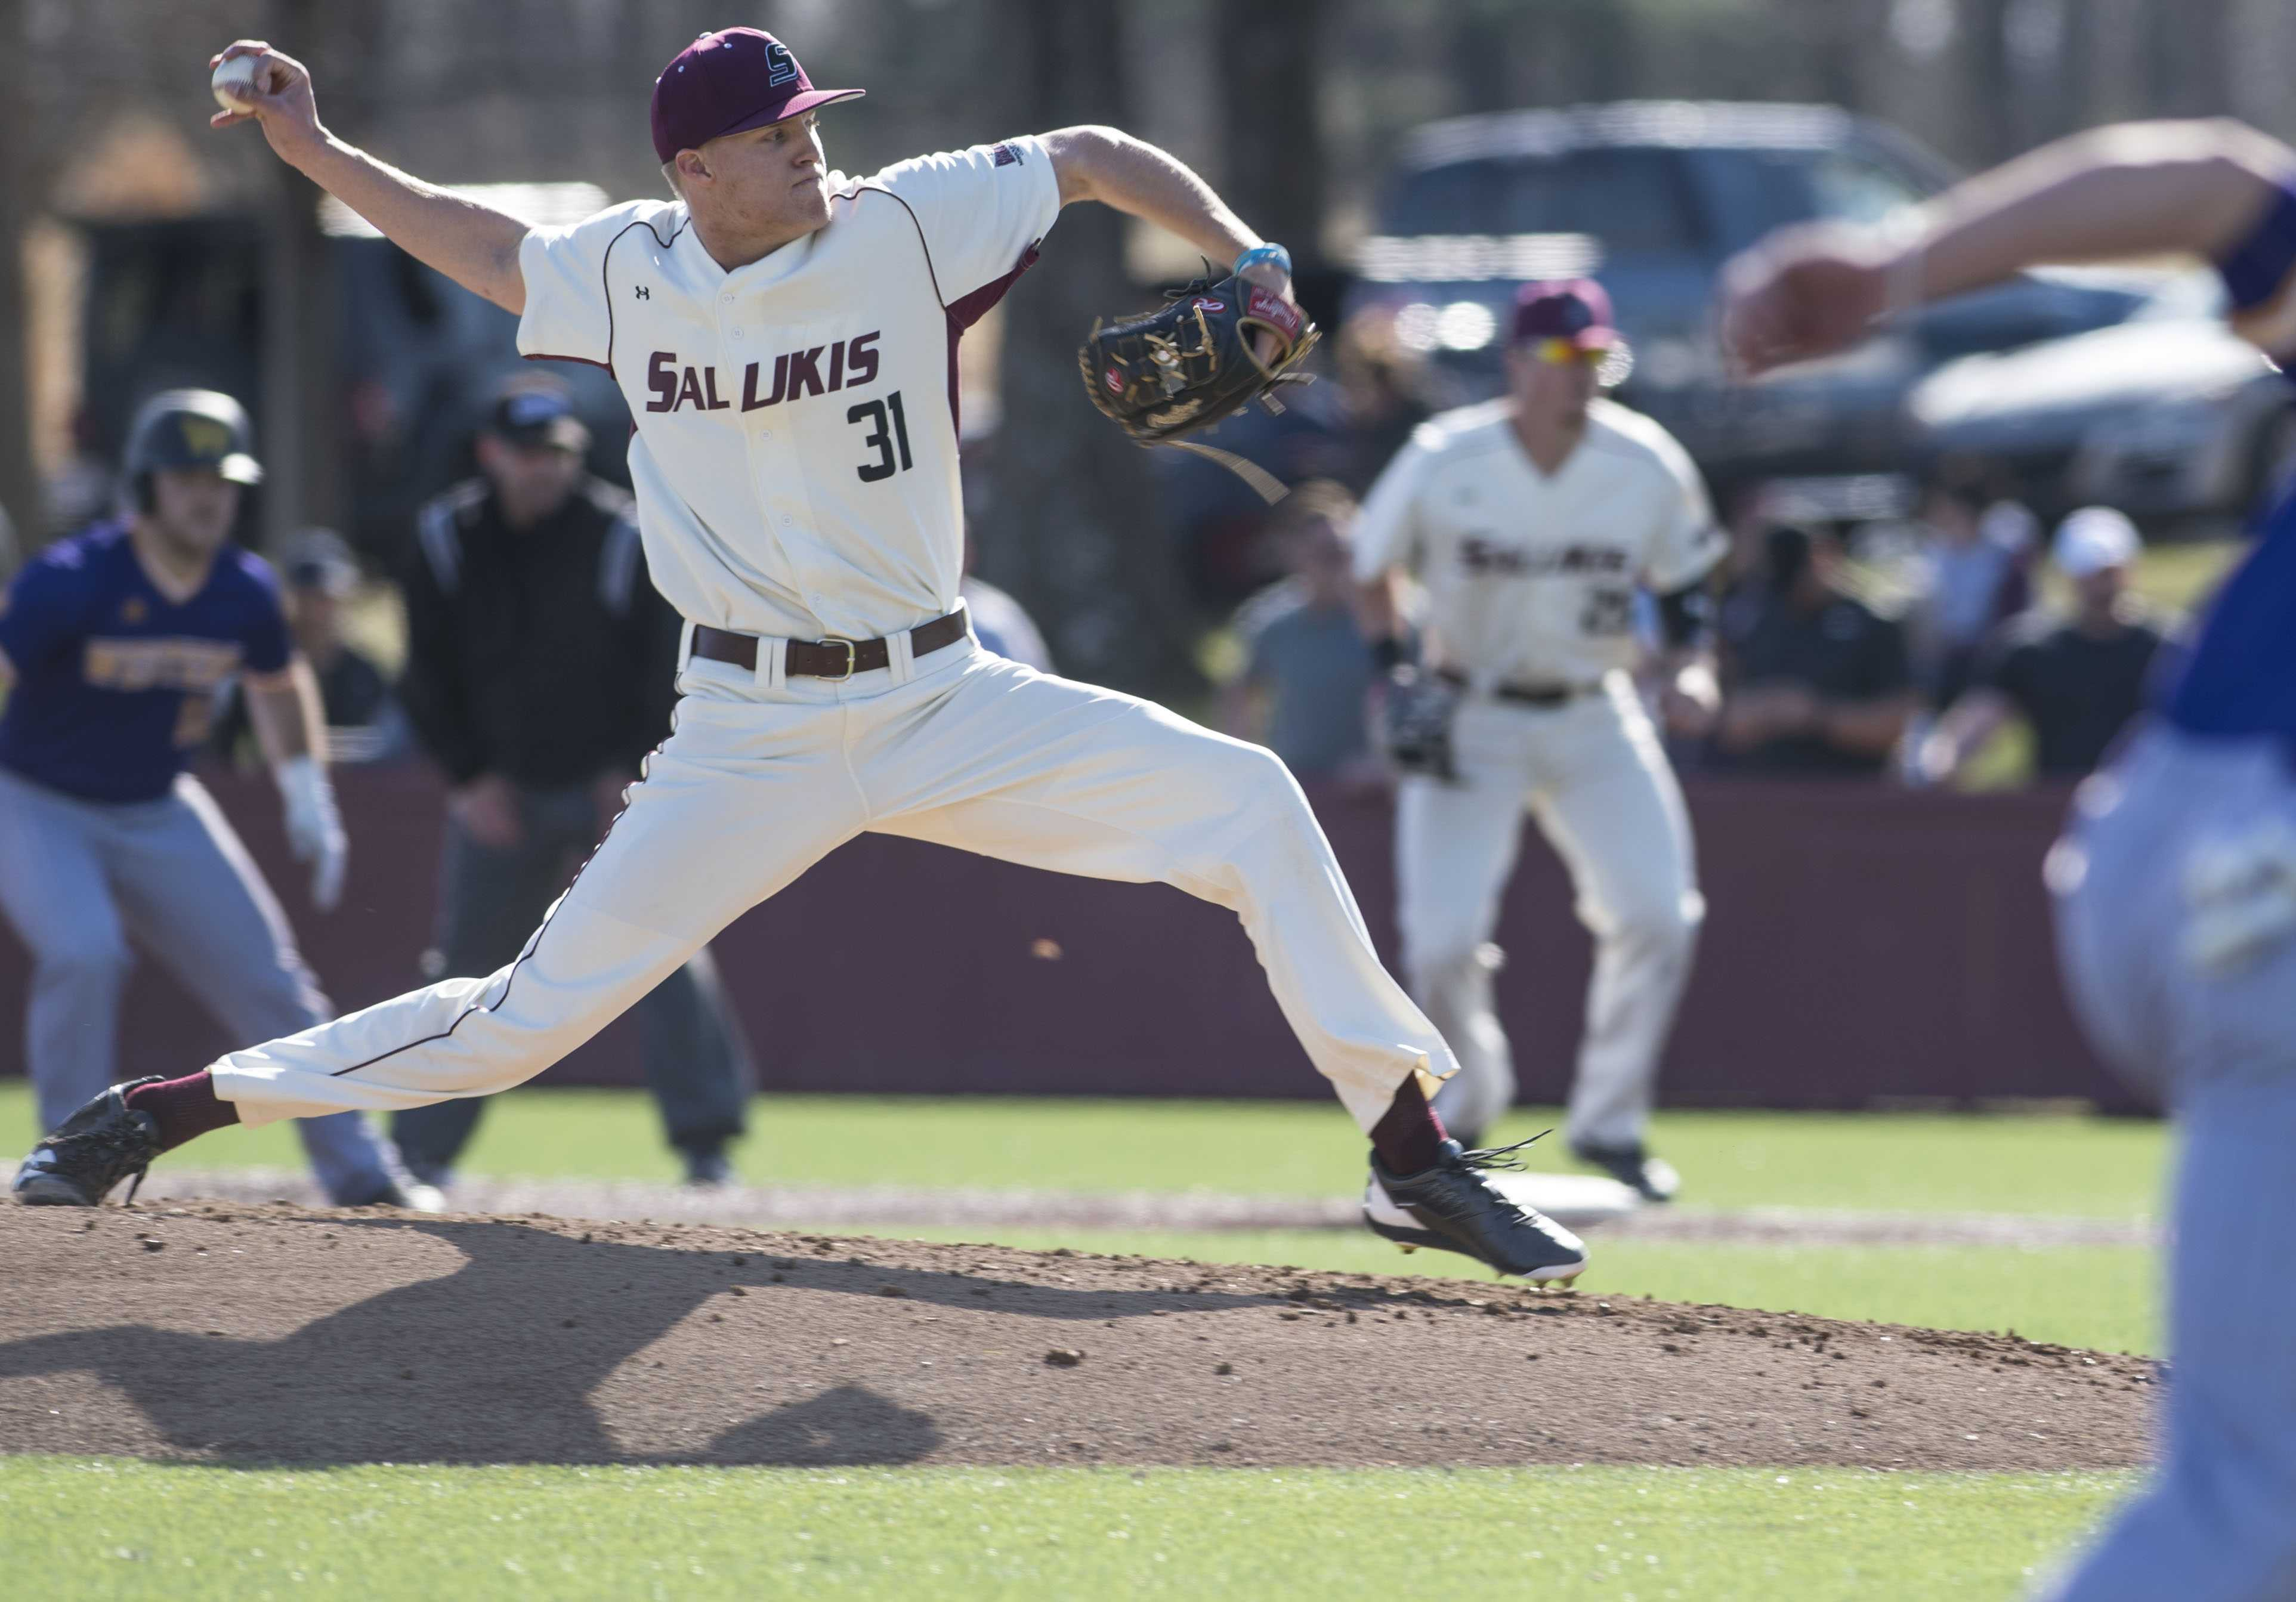 Saluki pitcher Michael Baird throws from the mound Saturday, March 4, 2017, during a game against Western Illinois University Leathernecks in Itchy Jones Stadium. The Salukis beat the Leathernecks 12-2. (Bill Lukitsch | @lukitsbill)